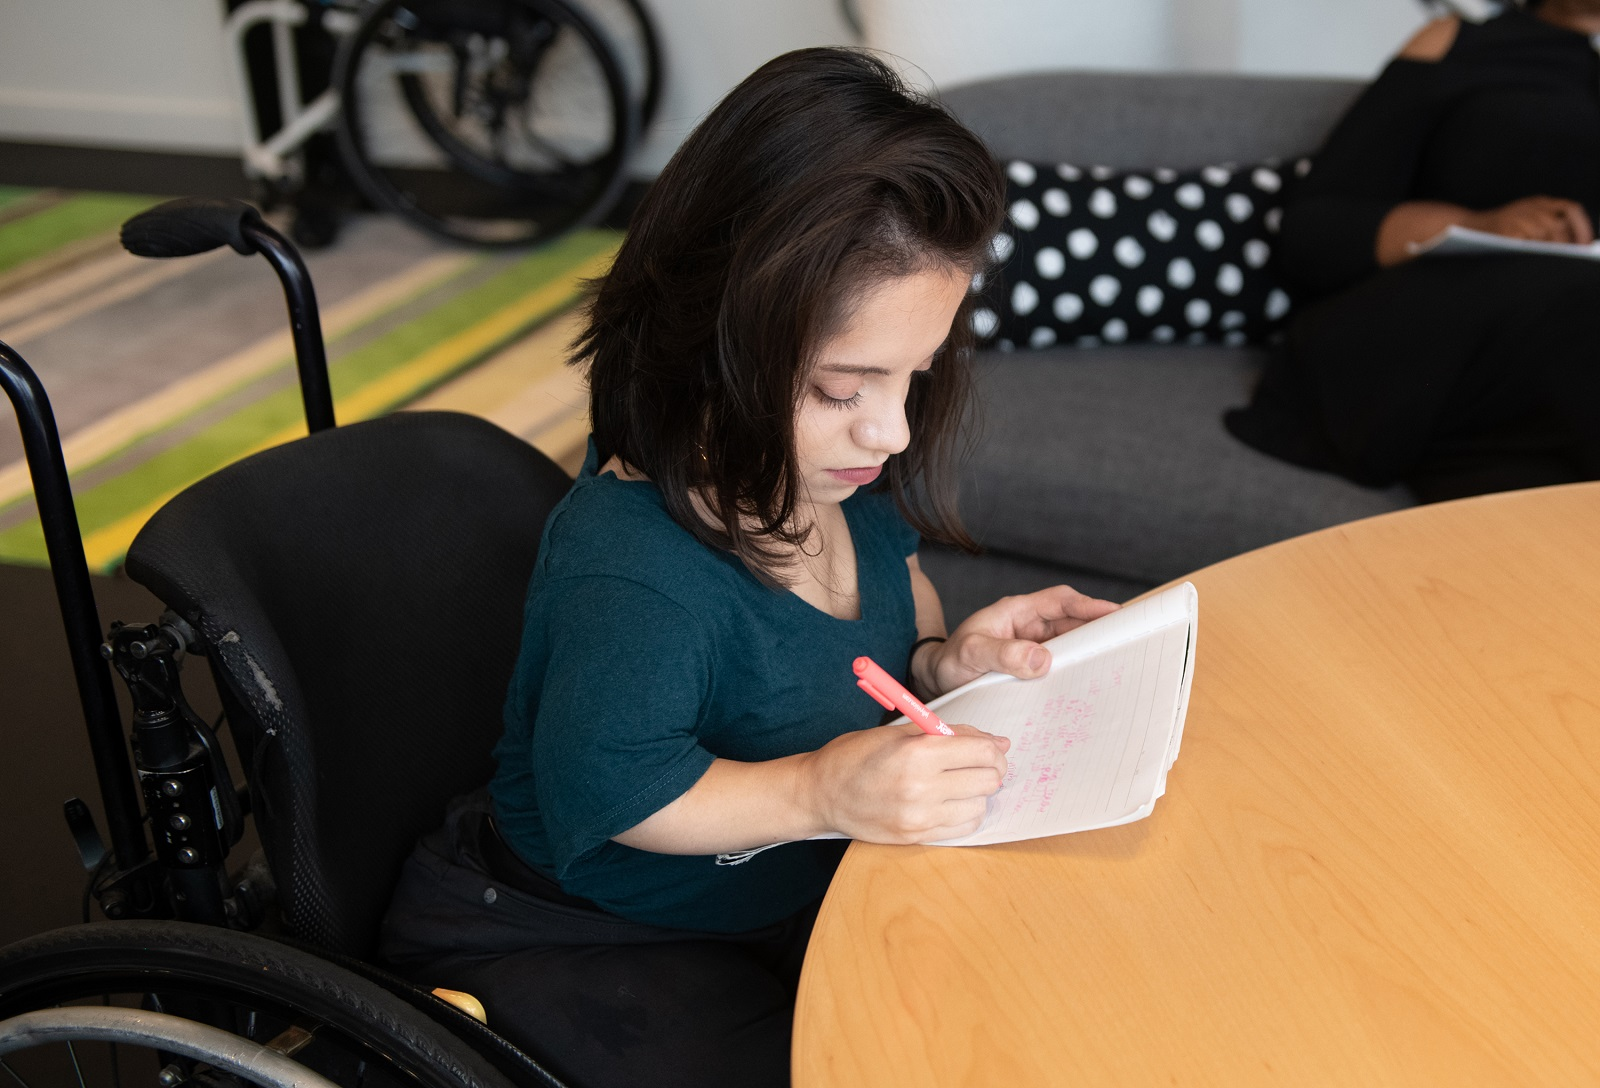 A South Asian person in her wheelchair takes notes by hand during a meeting.